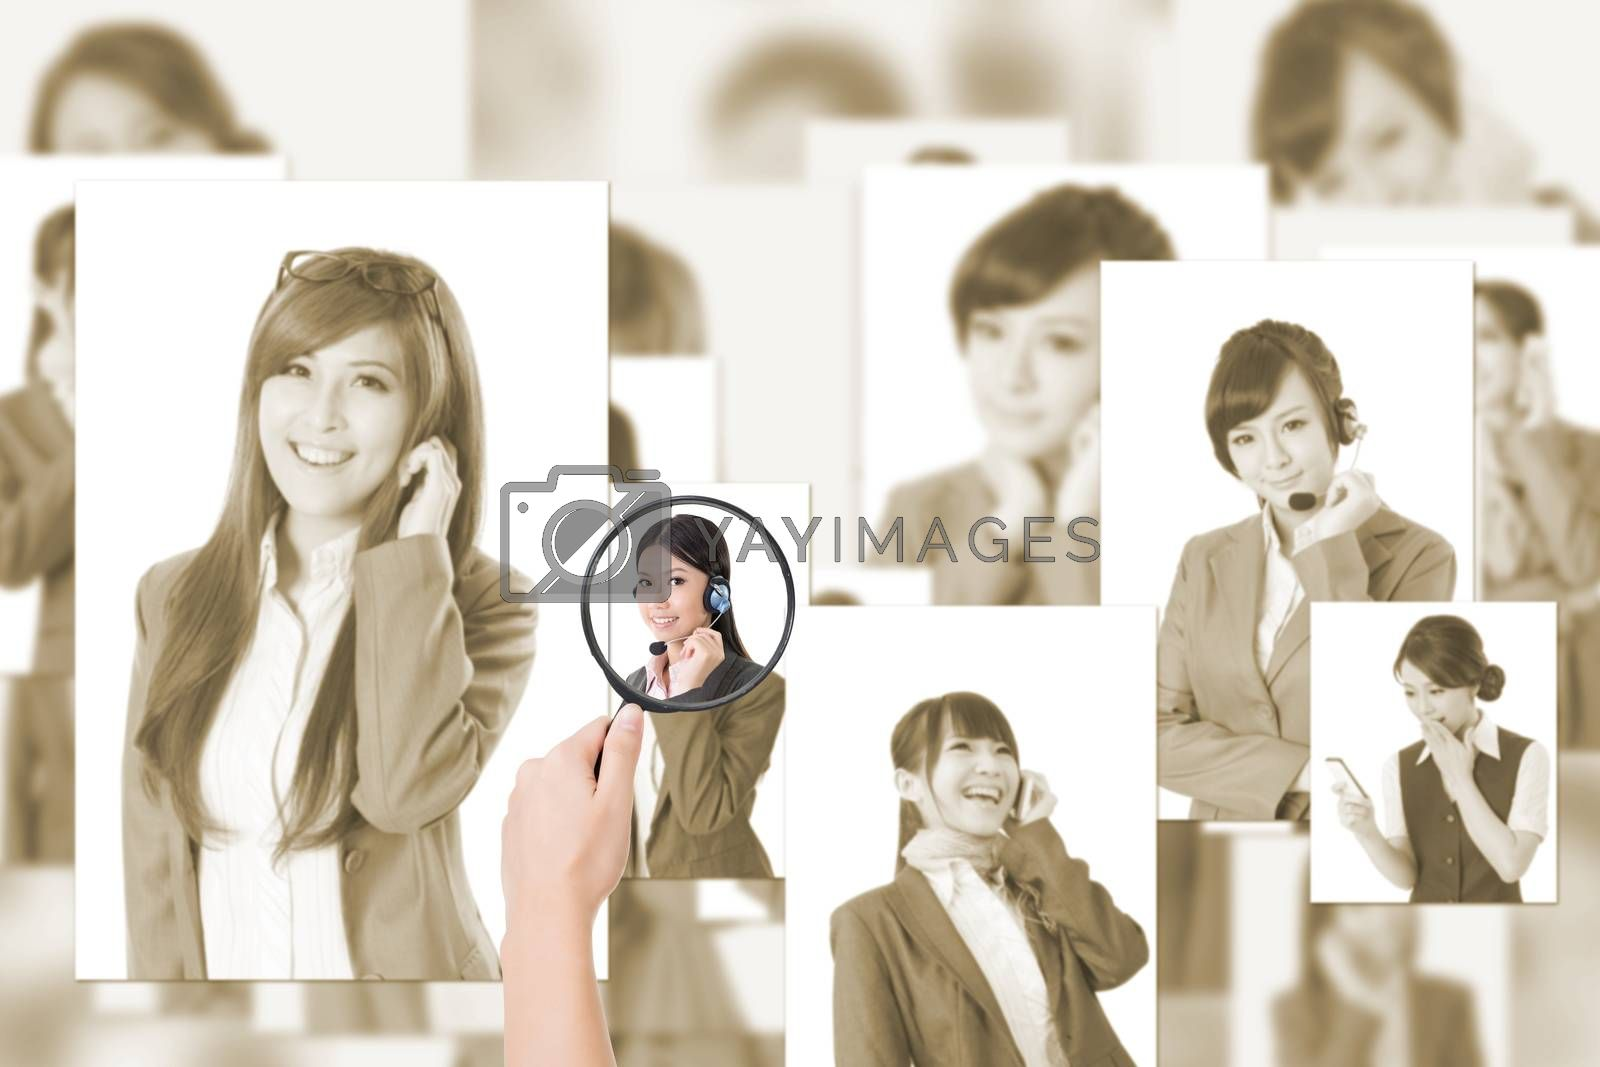 Concept of human resources, choose the right person from the people screen wall.